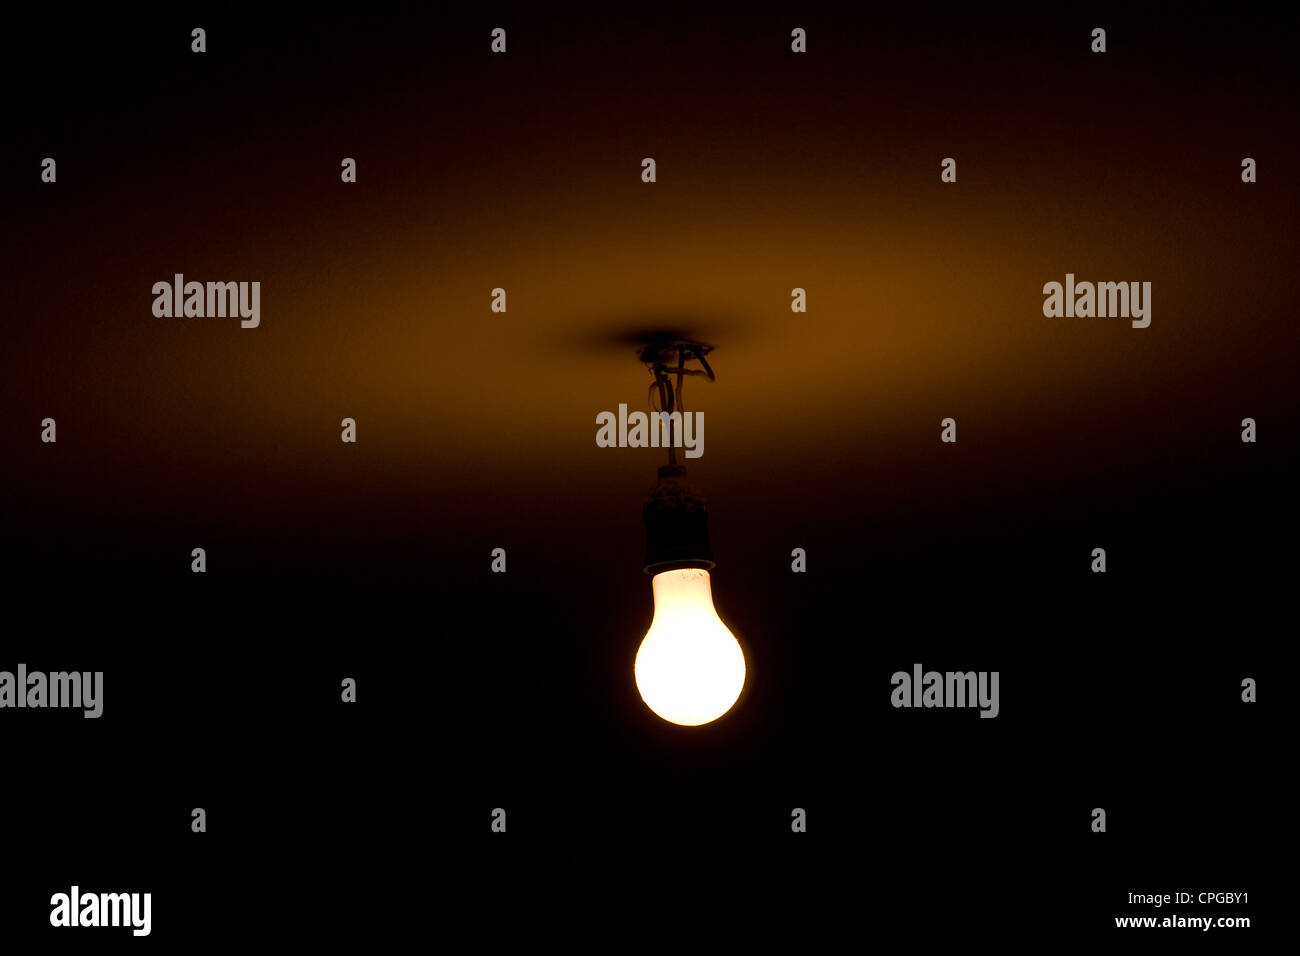 Bare light bulb hanging from the ceiling stock photo 48303781 alamy bare light bulb hanging from the ceiling aloadofball Image collections